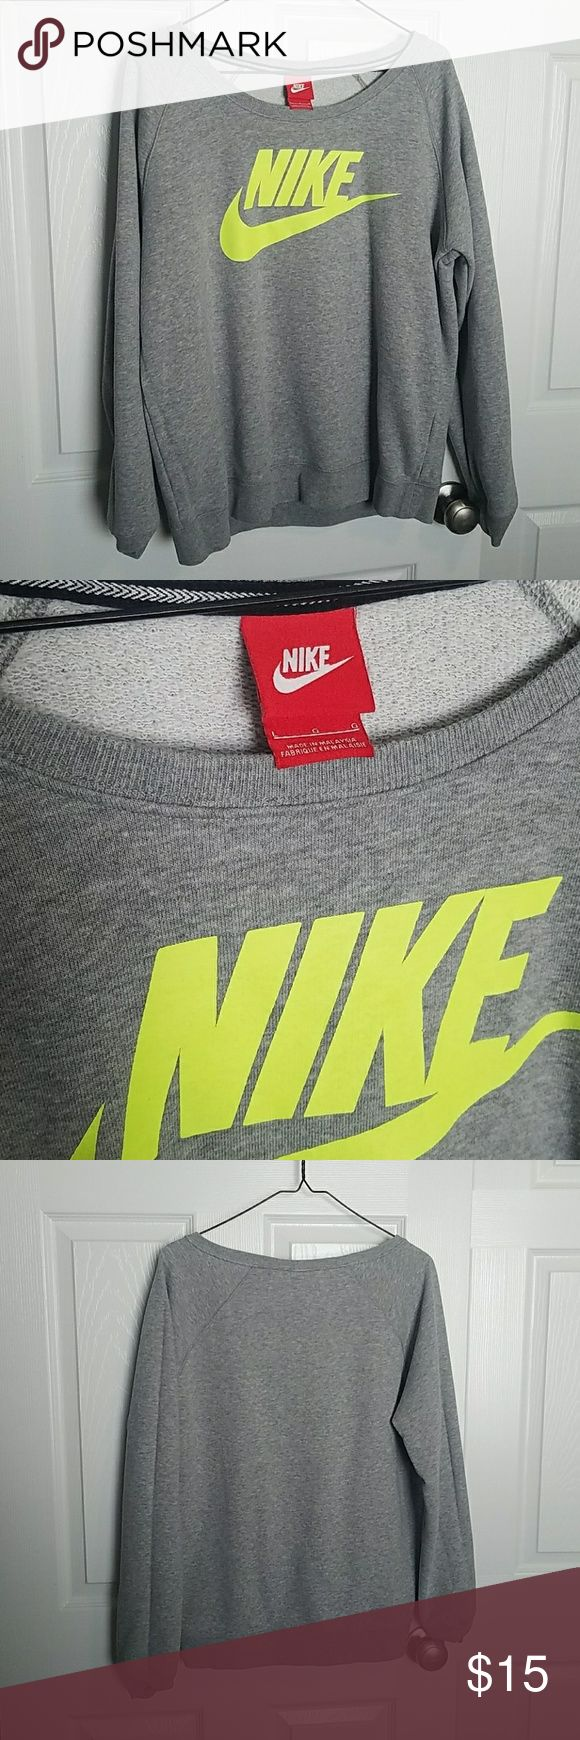 Nike women's sweatshirt Very comfortable grey Nike women's sweatshirt. It is a wide crewneck without kangaroo pocket. The emblem is a neon highlighter green / yellow. Super soft and comfortable. I just realized I wear hoodies more often than crewnecks so this is been in the back of my closet for a while. Nike Tops Sweatshirts & Hoodies